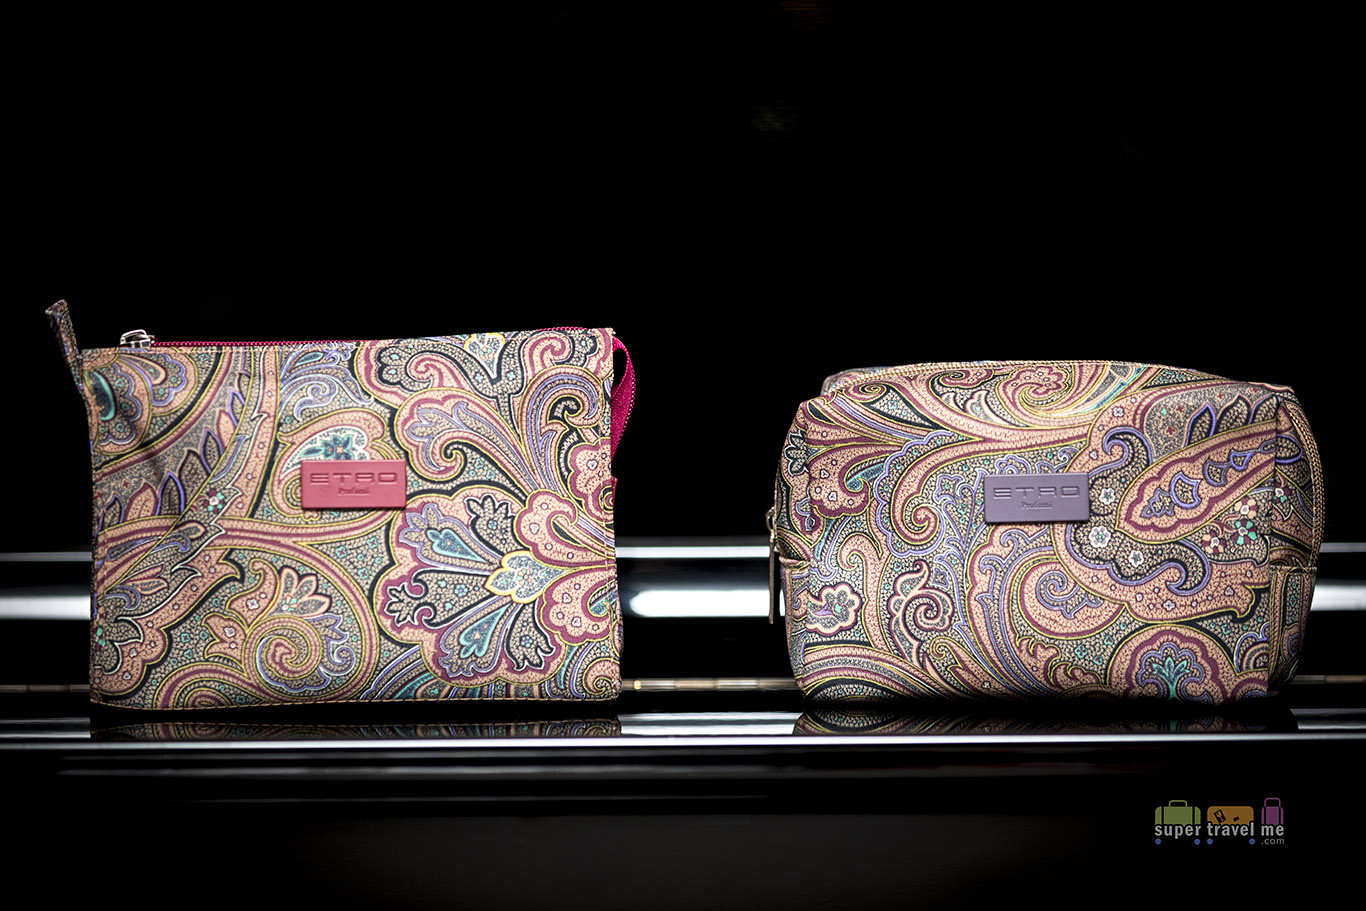 Japan Airlines launches new amenity kits featuring Etro products